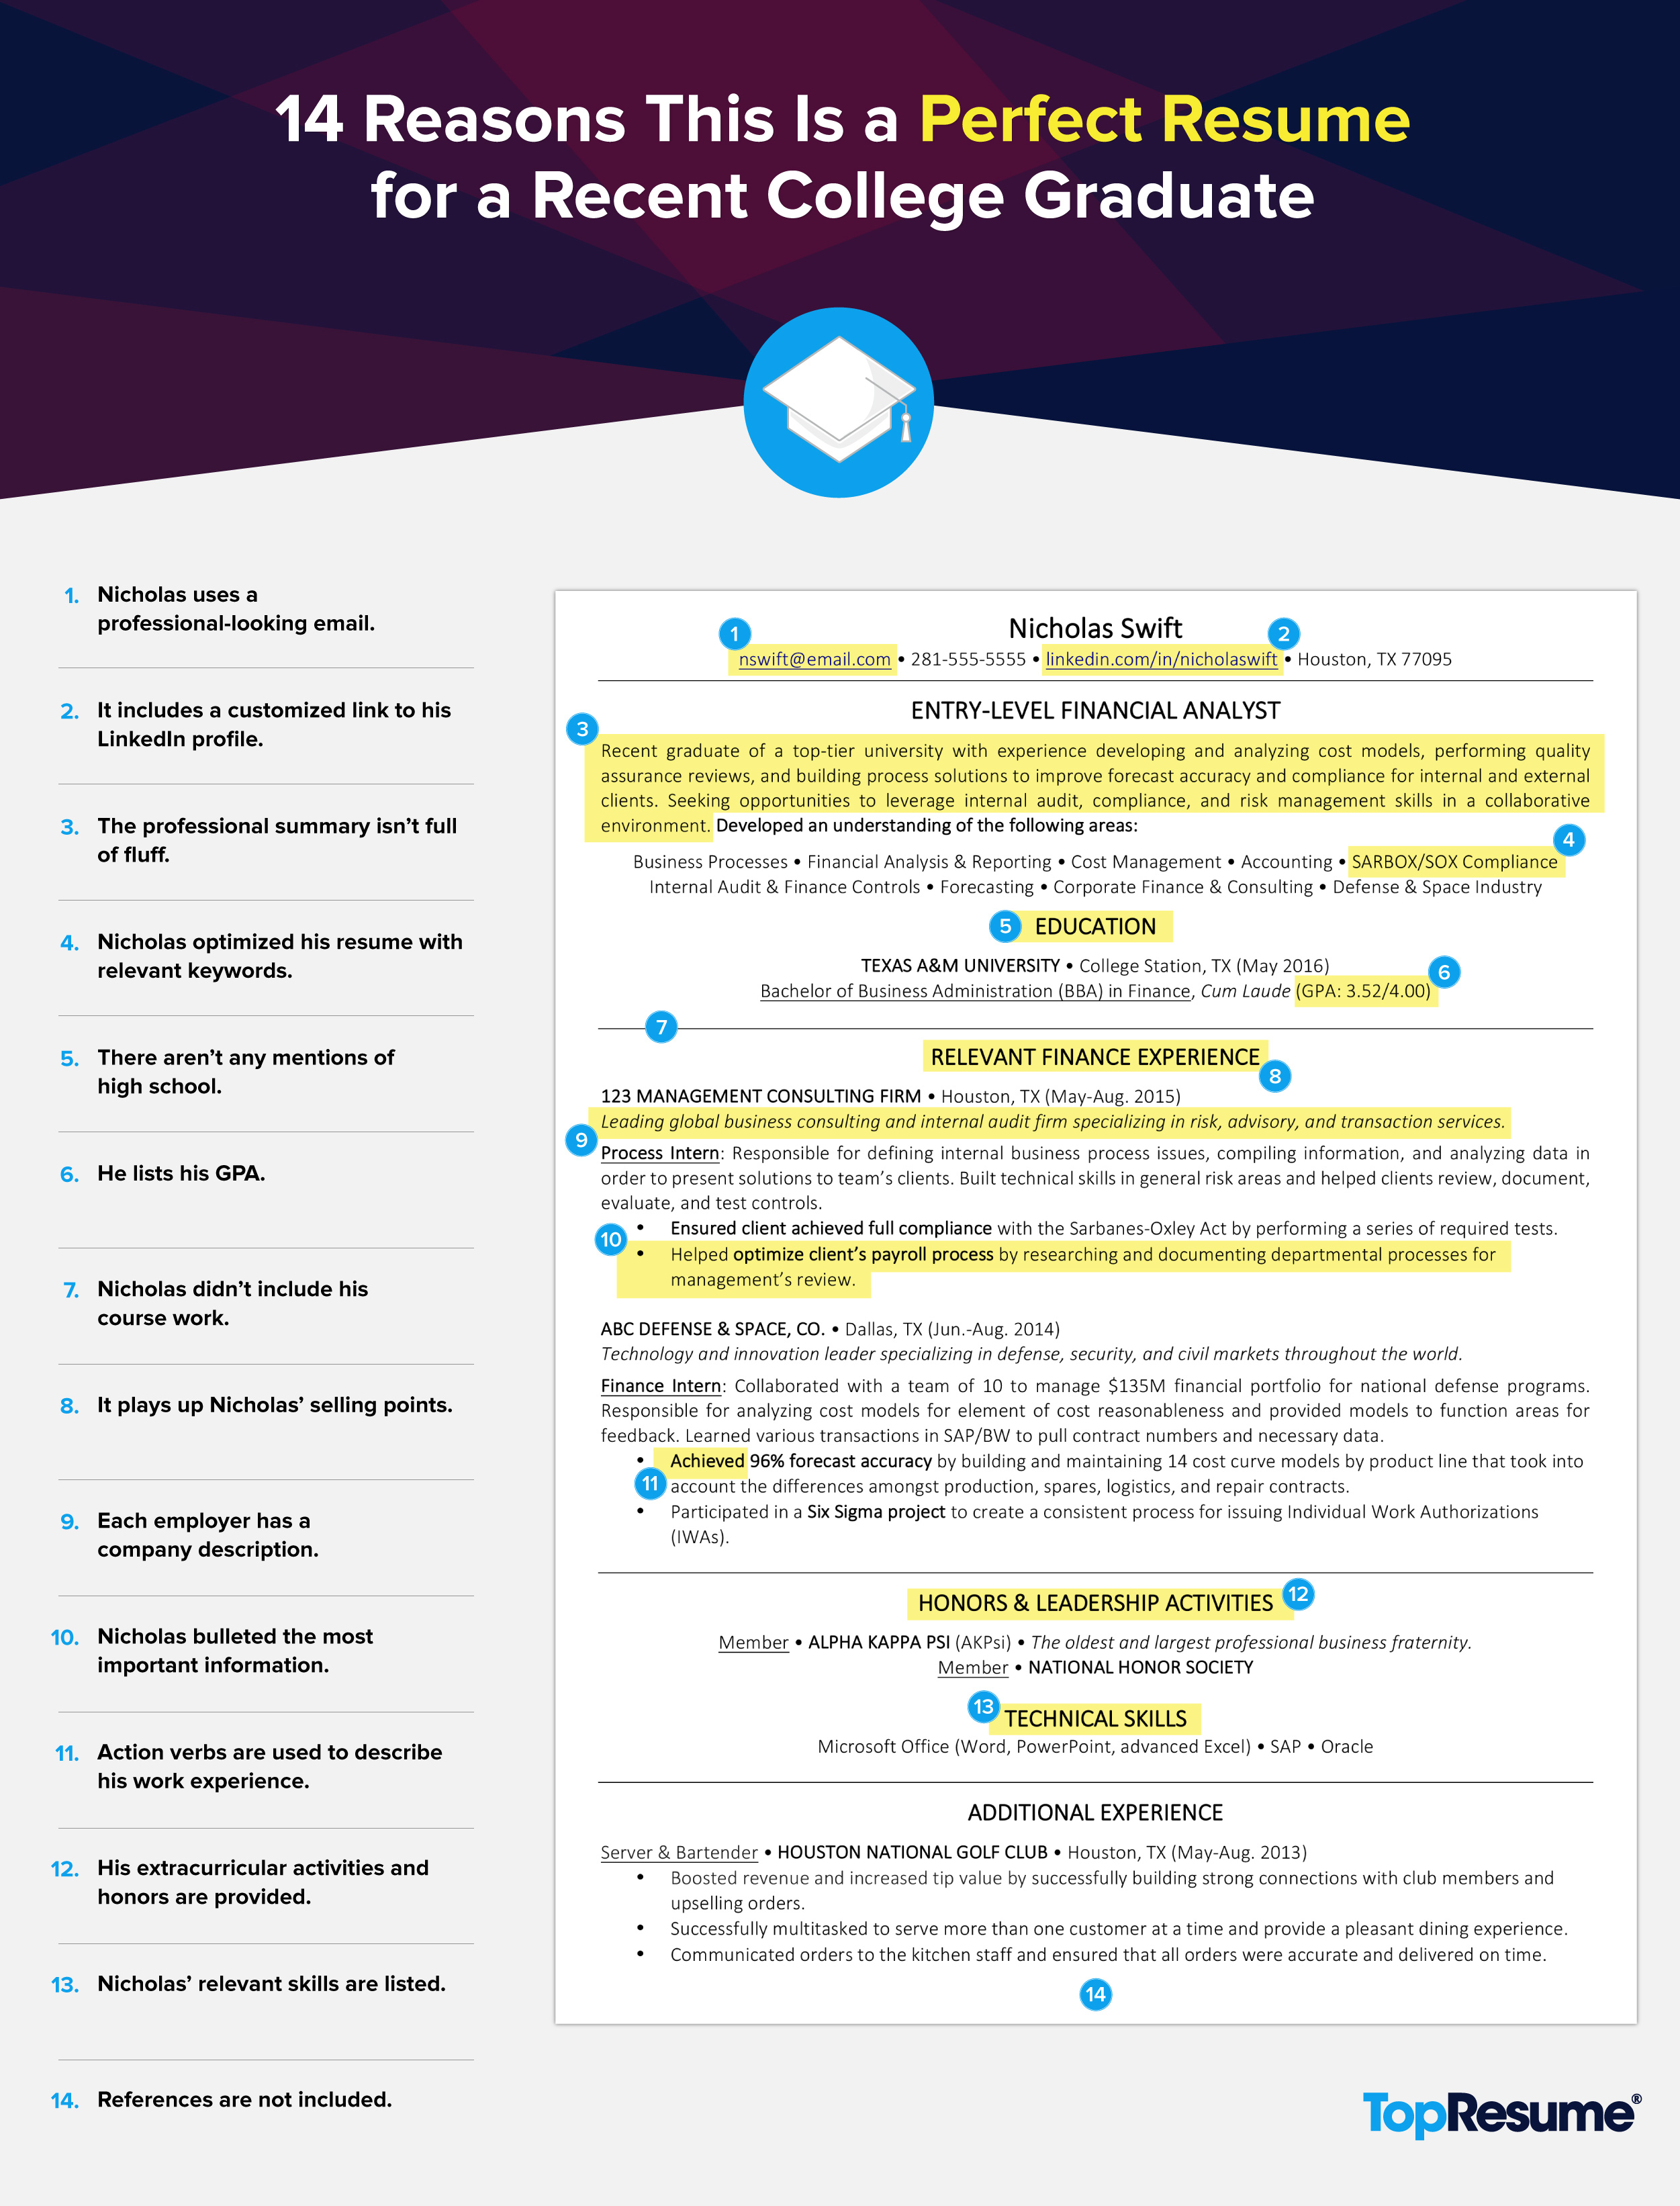 Tips For A Perfect Resume 14 Resume Strategies For Recent Graduates